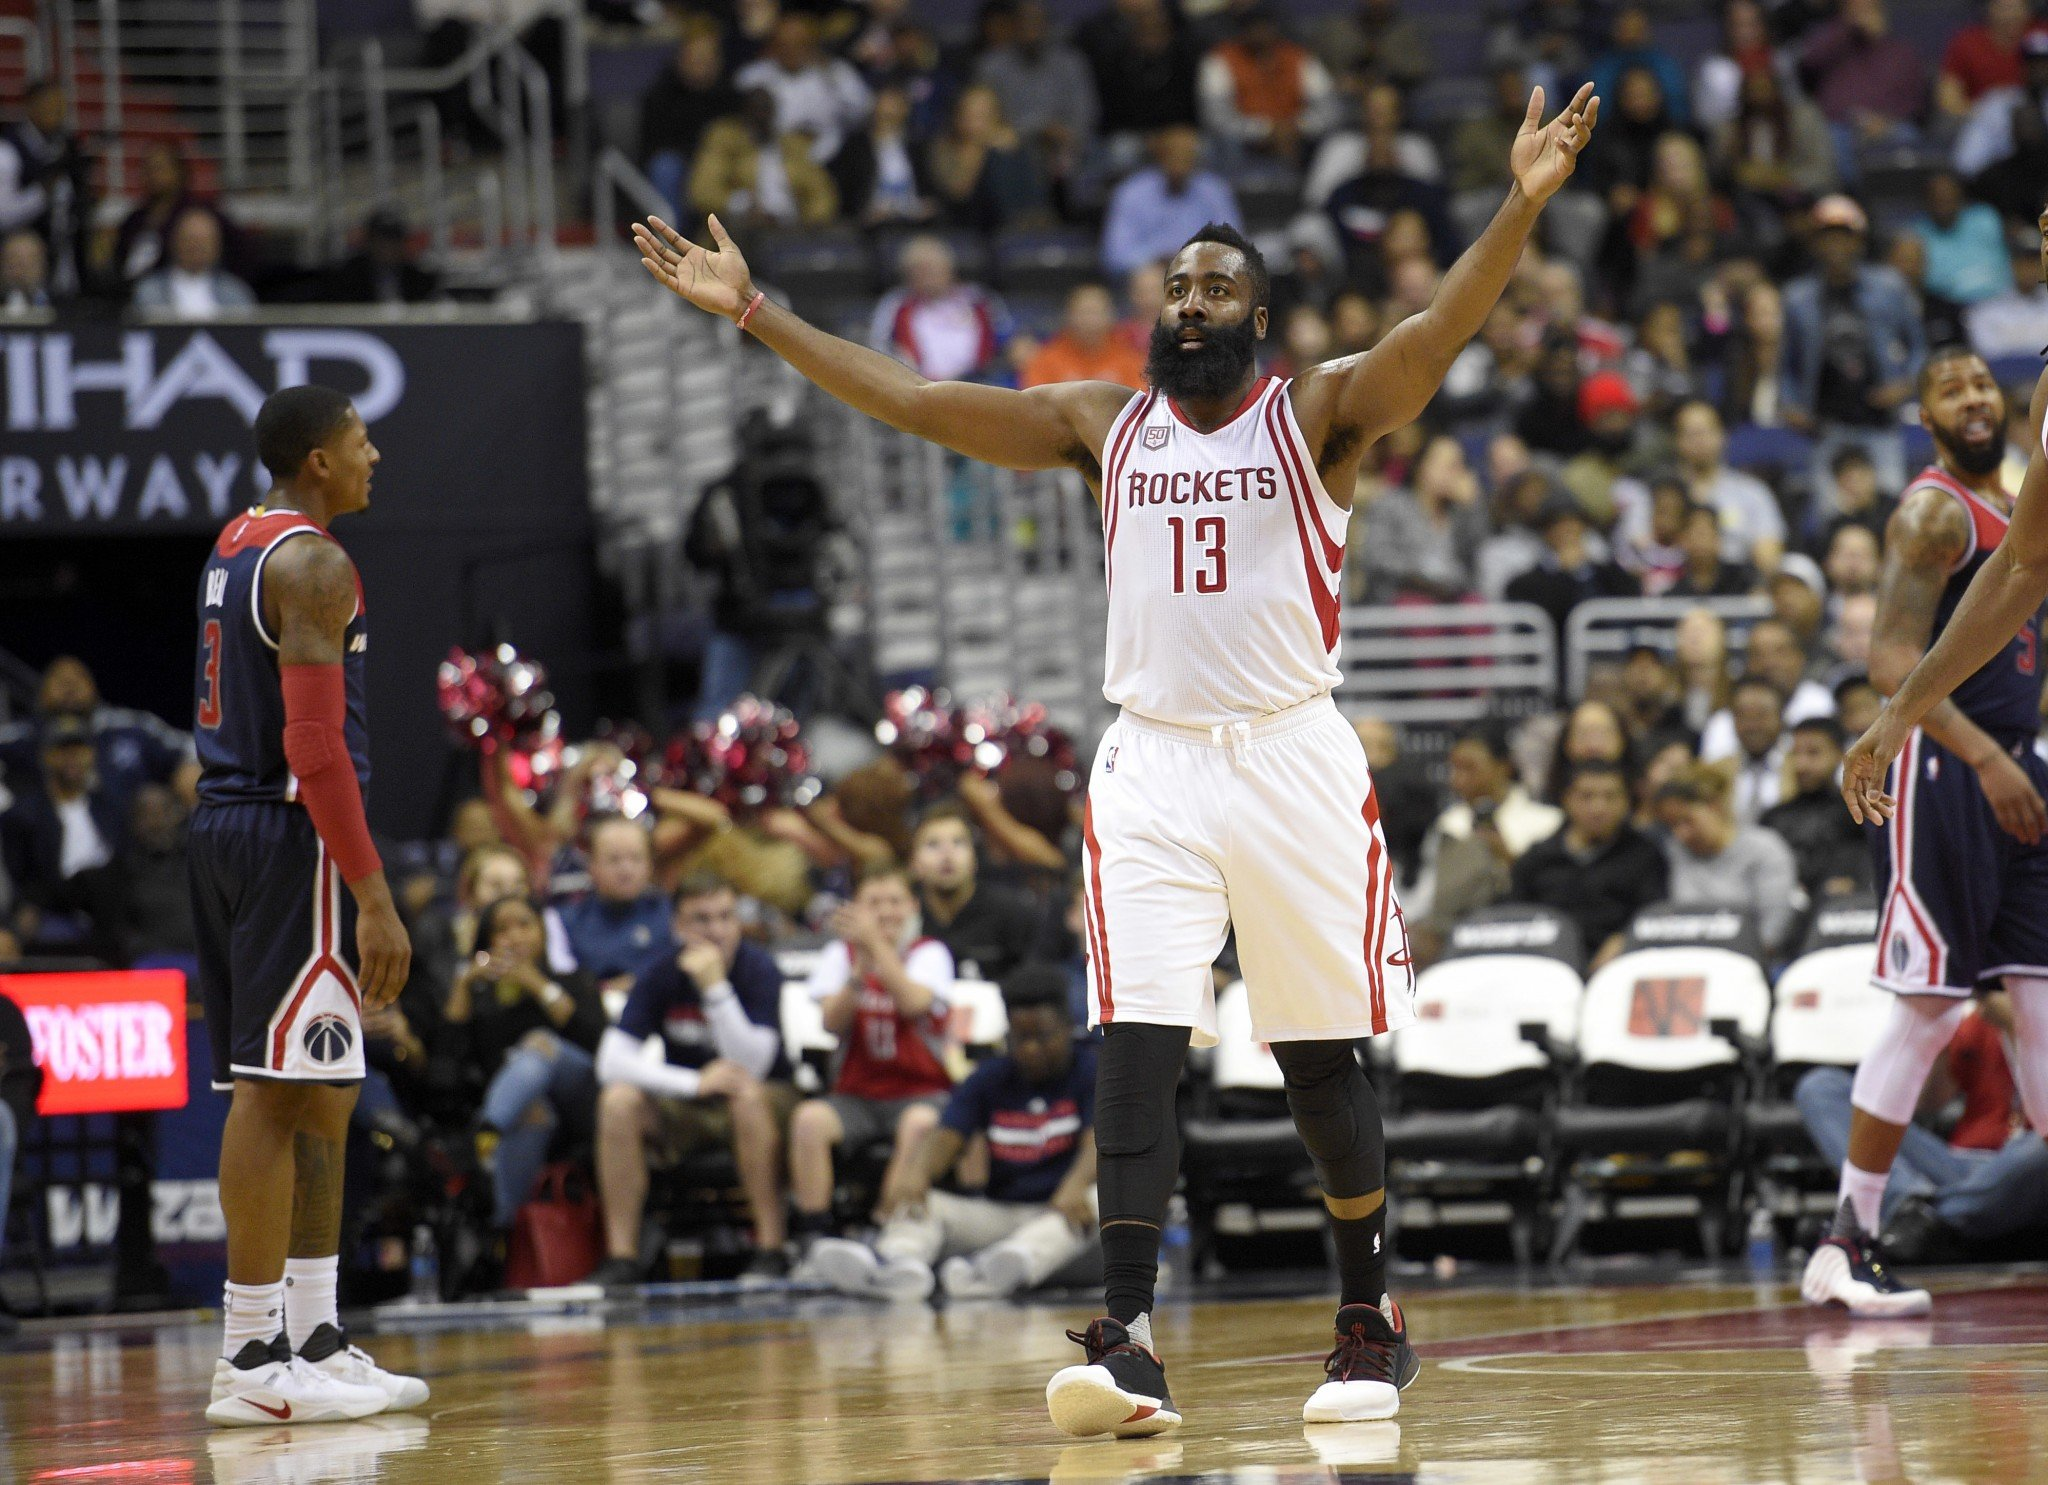 James Harden asks the assembled masses in D.C. if they're entertained. (AP)